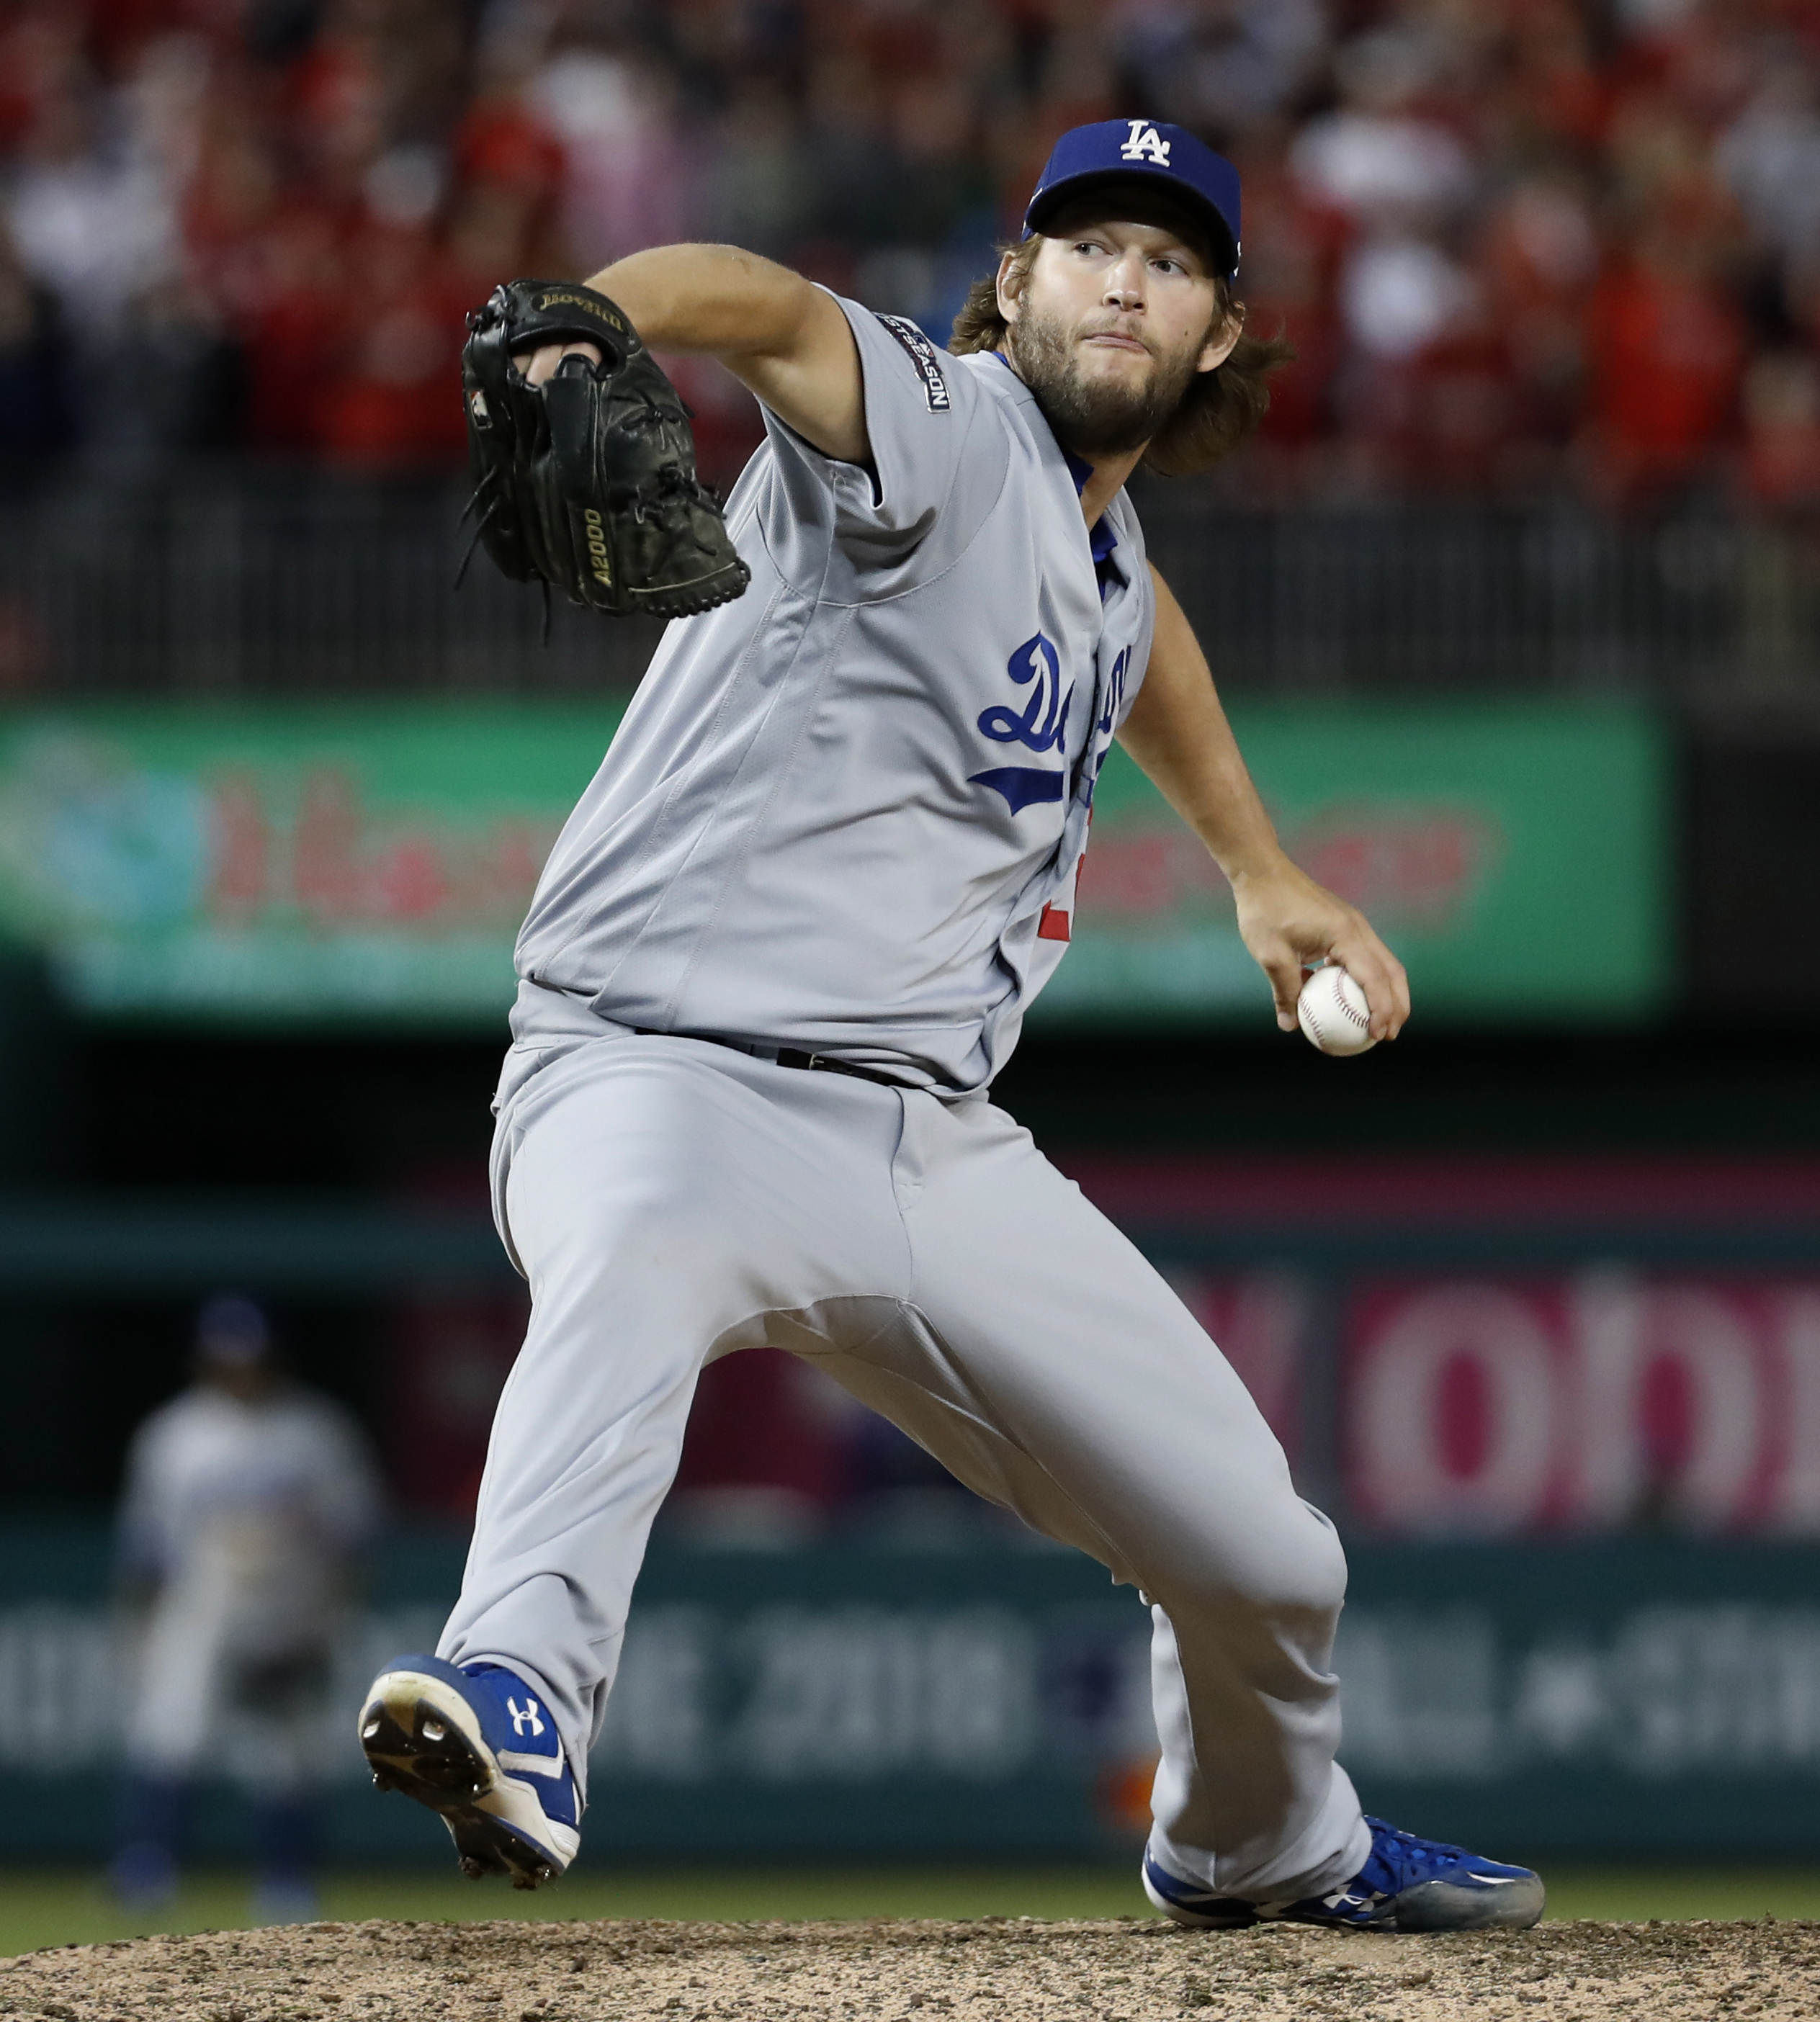 Los Angeles Dodgers pitcher Clayton Kershaw winds up during the ninth inning of Game 5 of a baseball National League Division Series, against the Washington Nationals at Nationals Park early Friday, Oct. 14, 2016, in Washington. The Dodgers won 4-3. (AP P